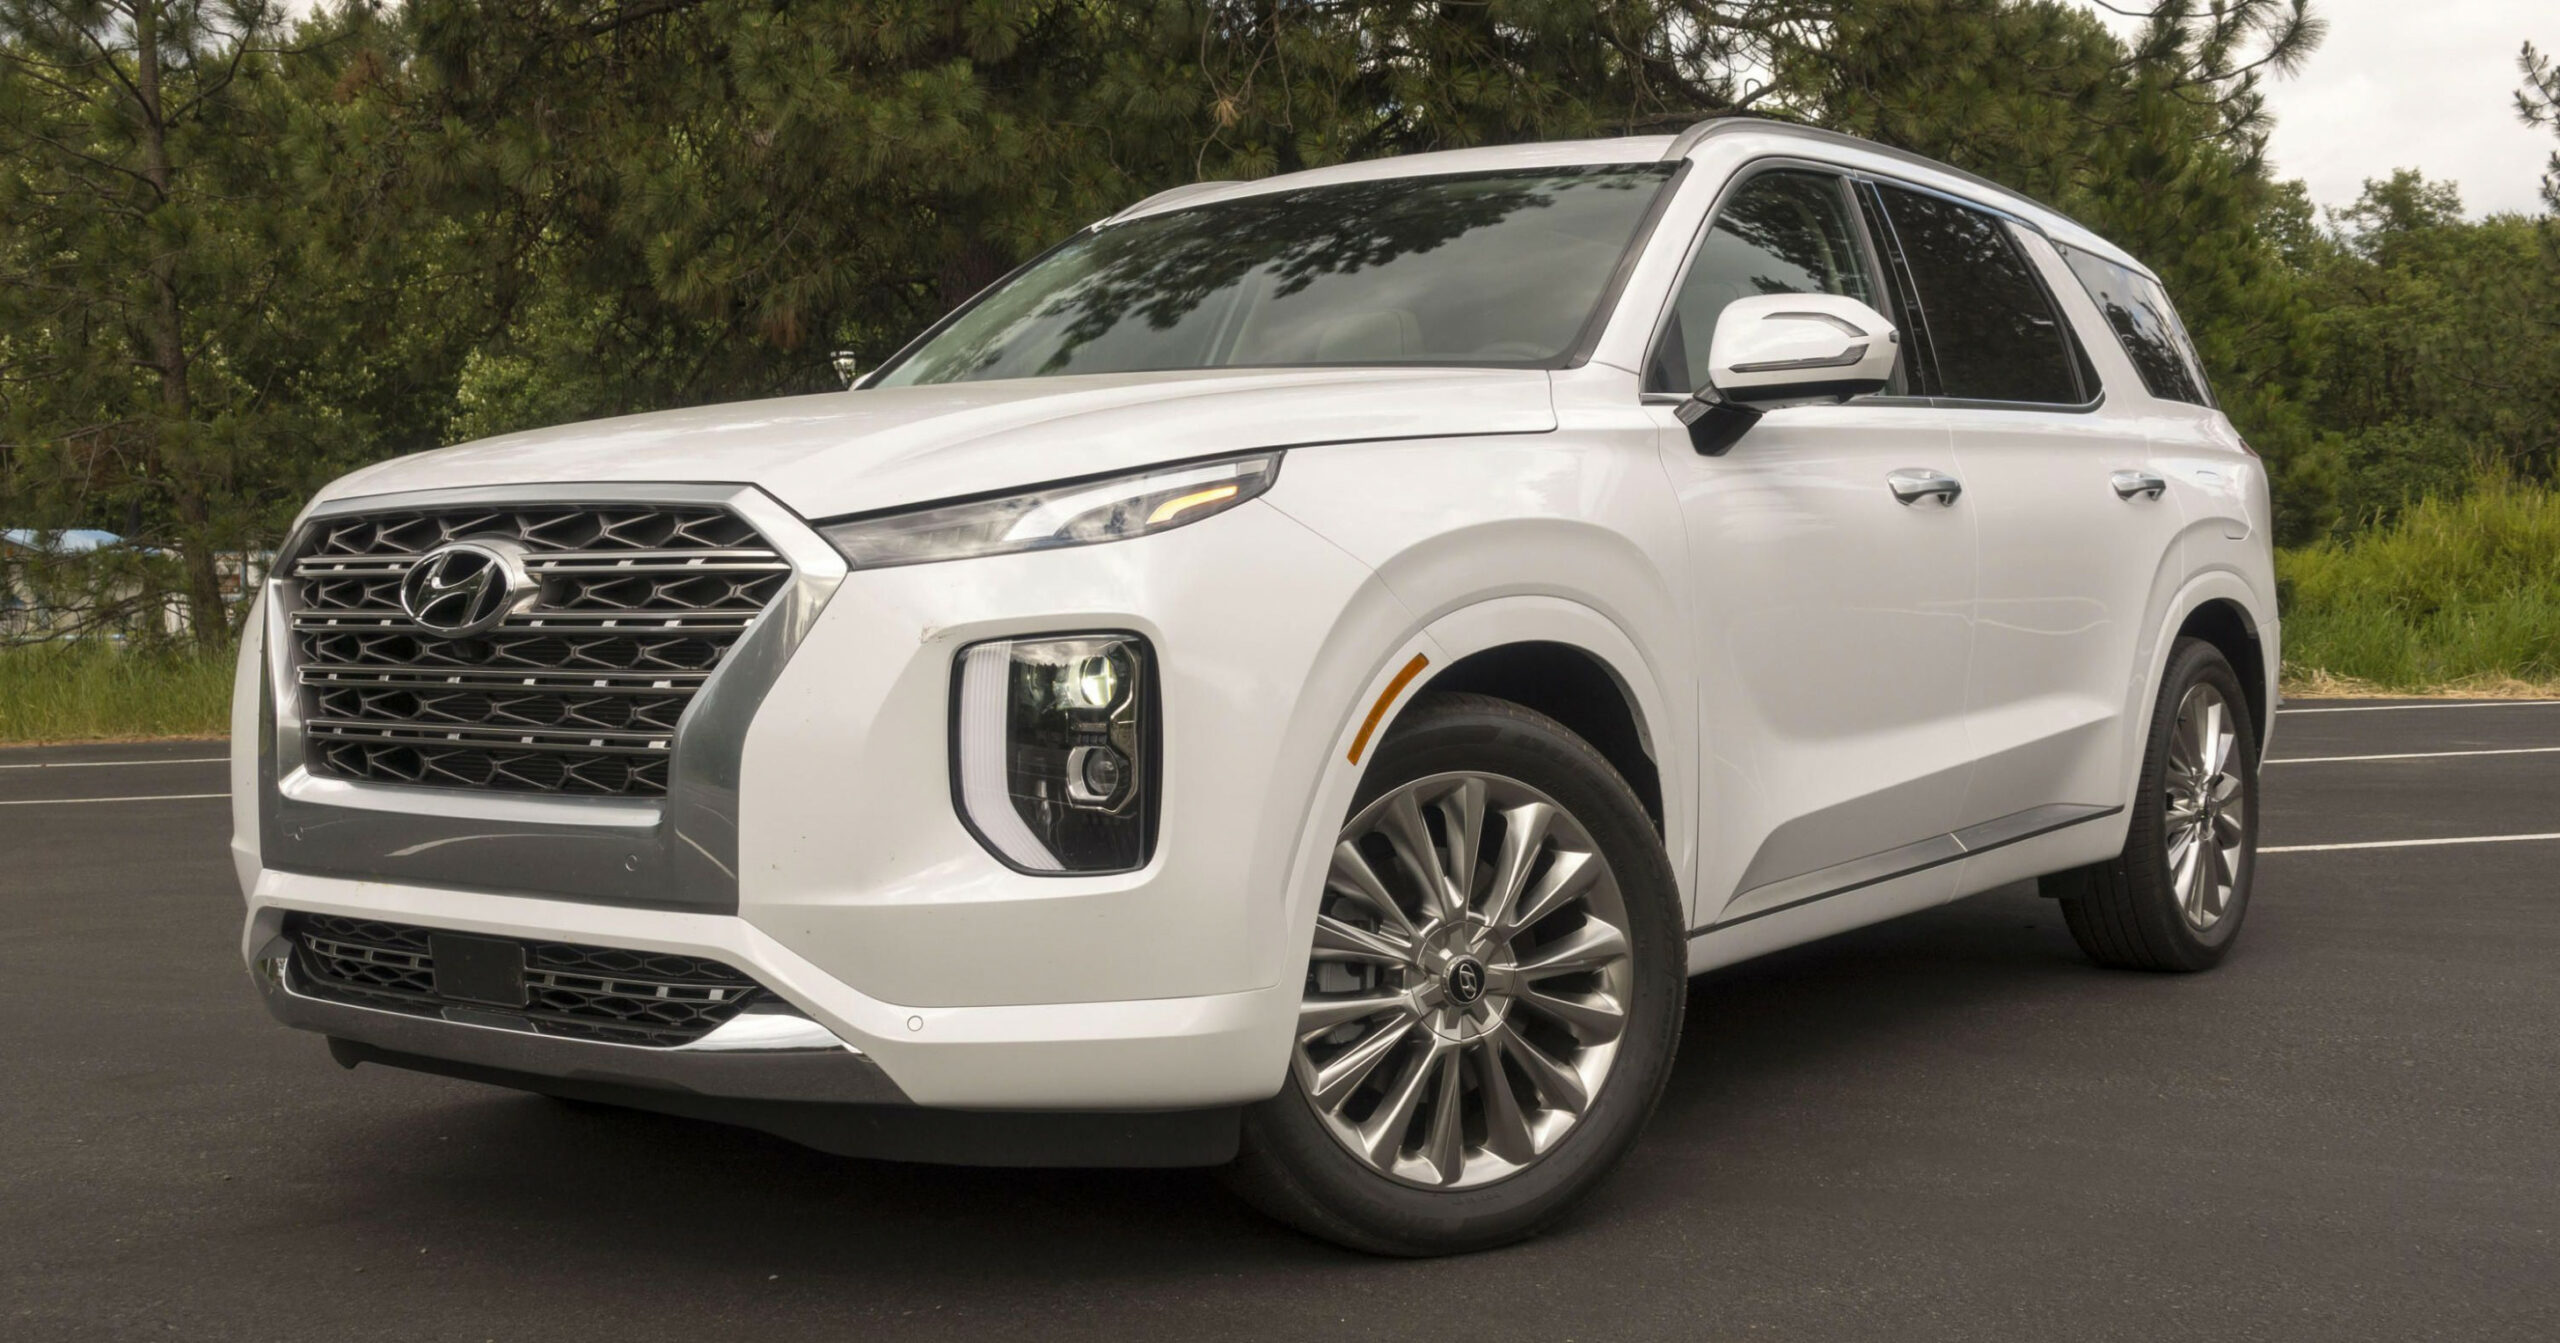 8 Hyundai Palisade first drive review: A midsize SUV that's big ...